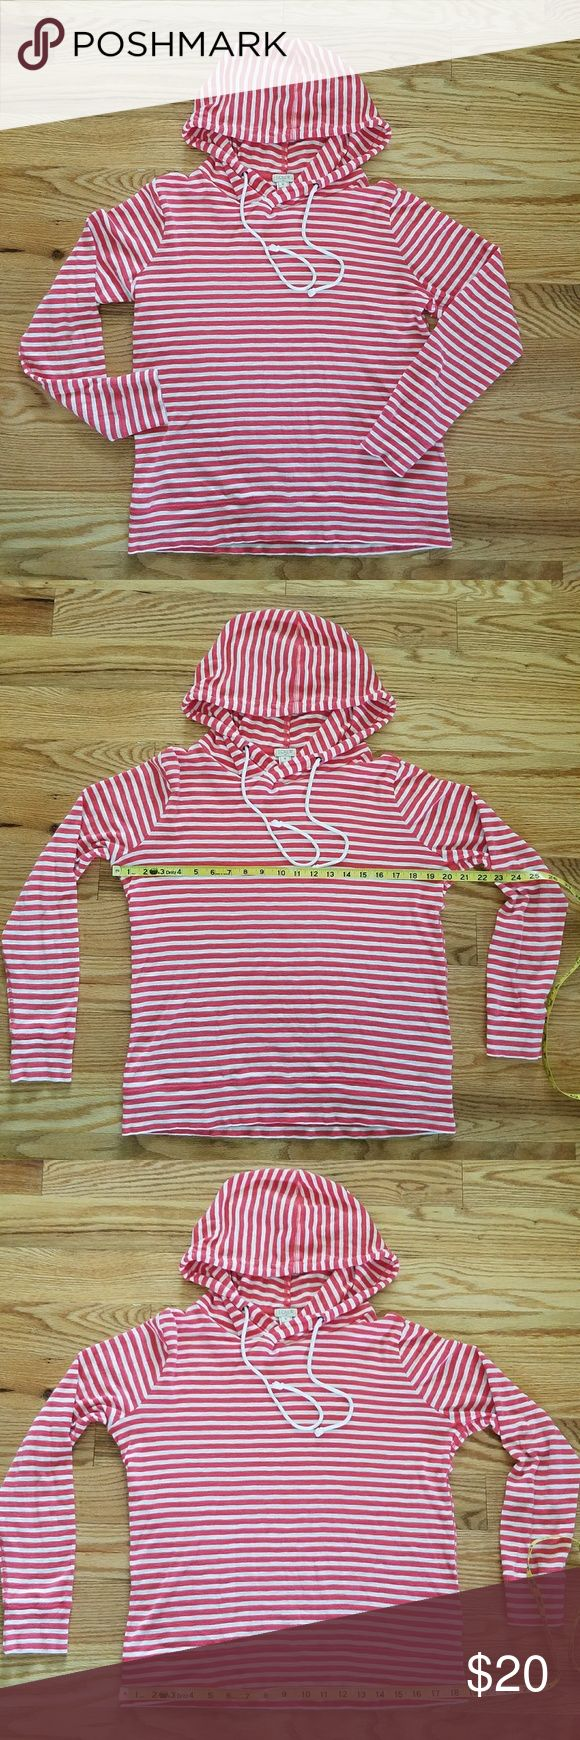 J. Crew Coral Pink Striped Hoodie Super soft 100% cotton striped hoodie. Coral pink and white in color.  Cross over hooded neck gives a cowl style neck. Long sleeves. Slightly heather in color. A bit of wash wear. Still in great condition! J. Crew Tops Sweatshirts & Hoodies